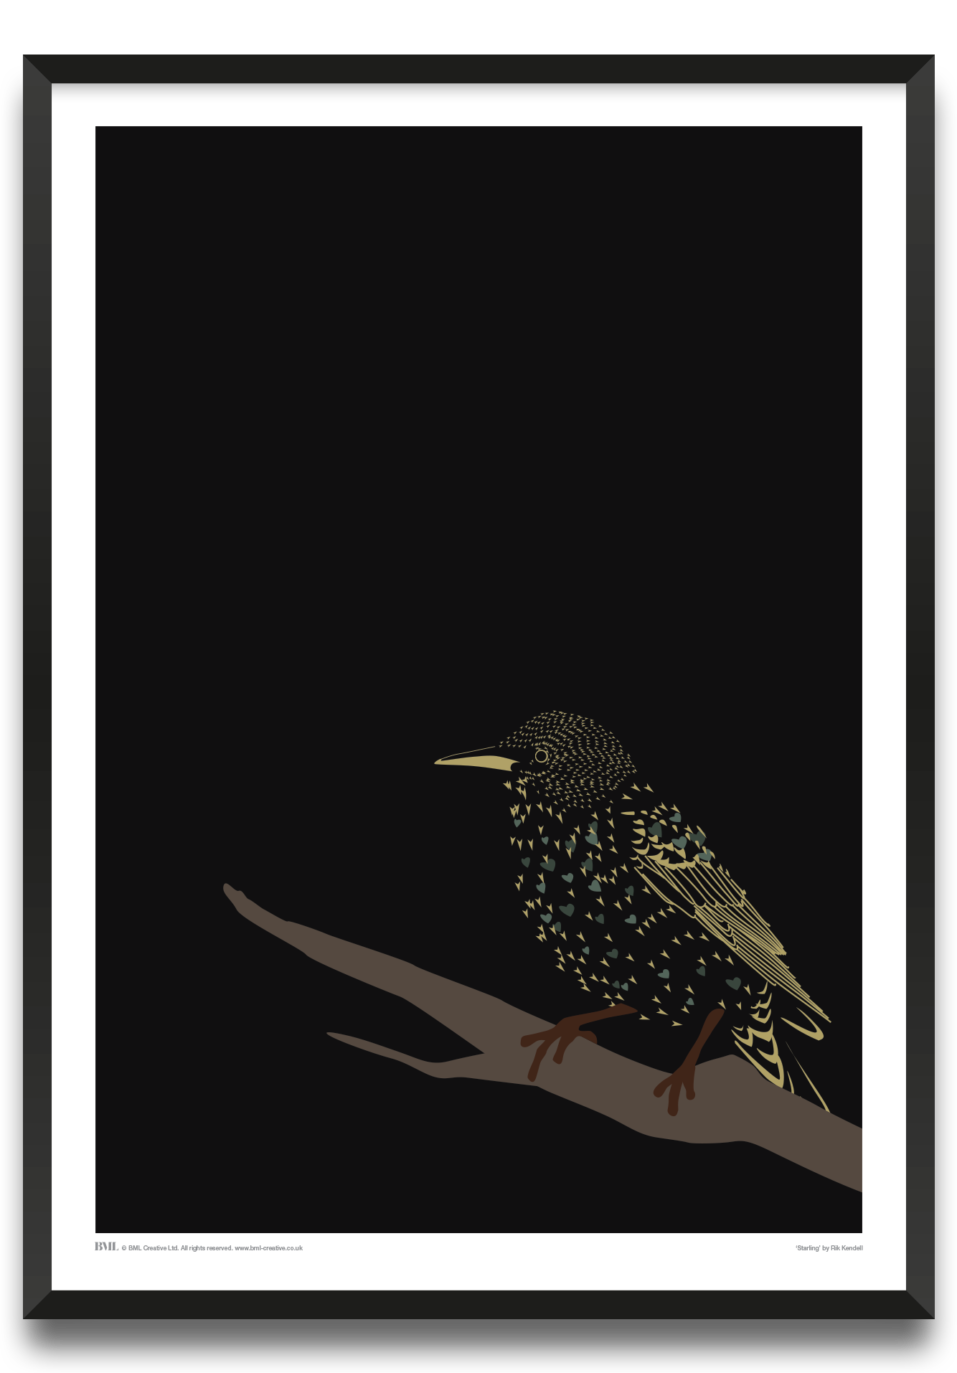 Starling, bird art print by Rik Kendell, Prints for Charity